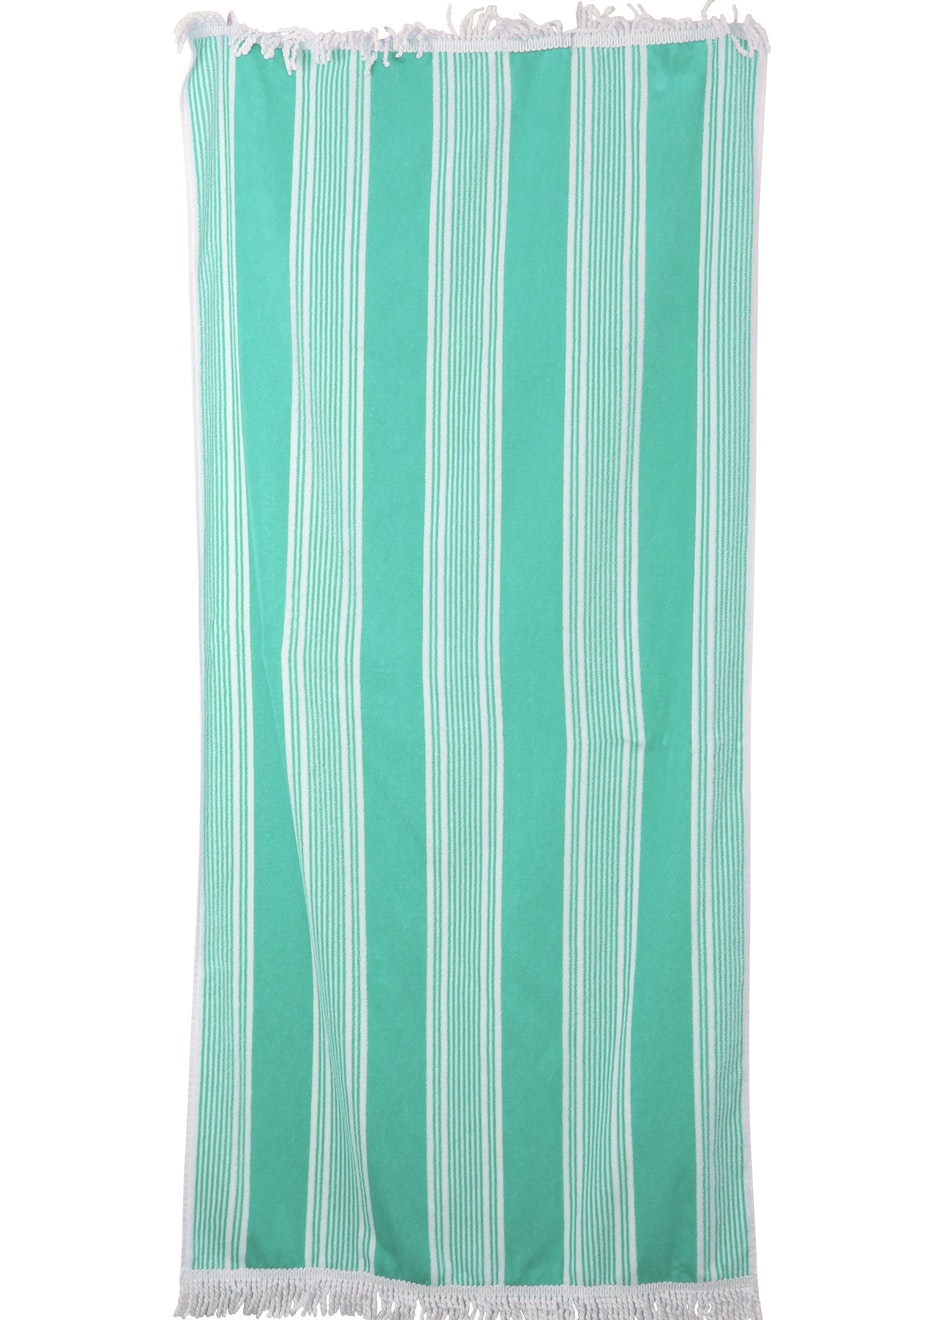 100% Cotton Velour Dobby Beach Towels with Fringe - 80x160cm - 440GSM - Mint